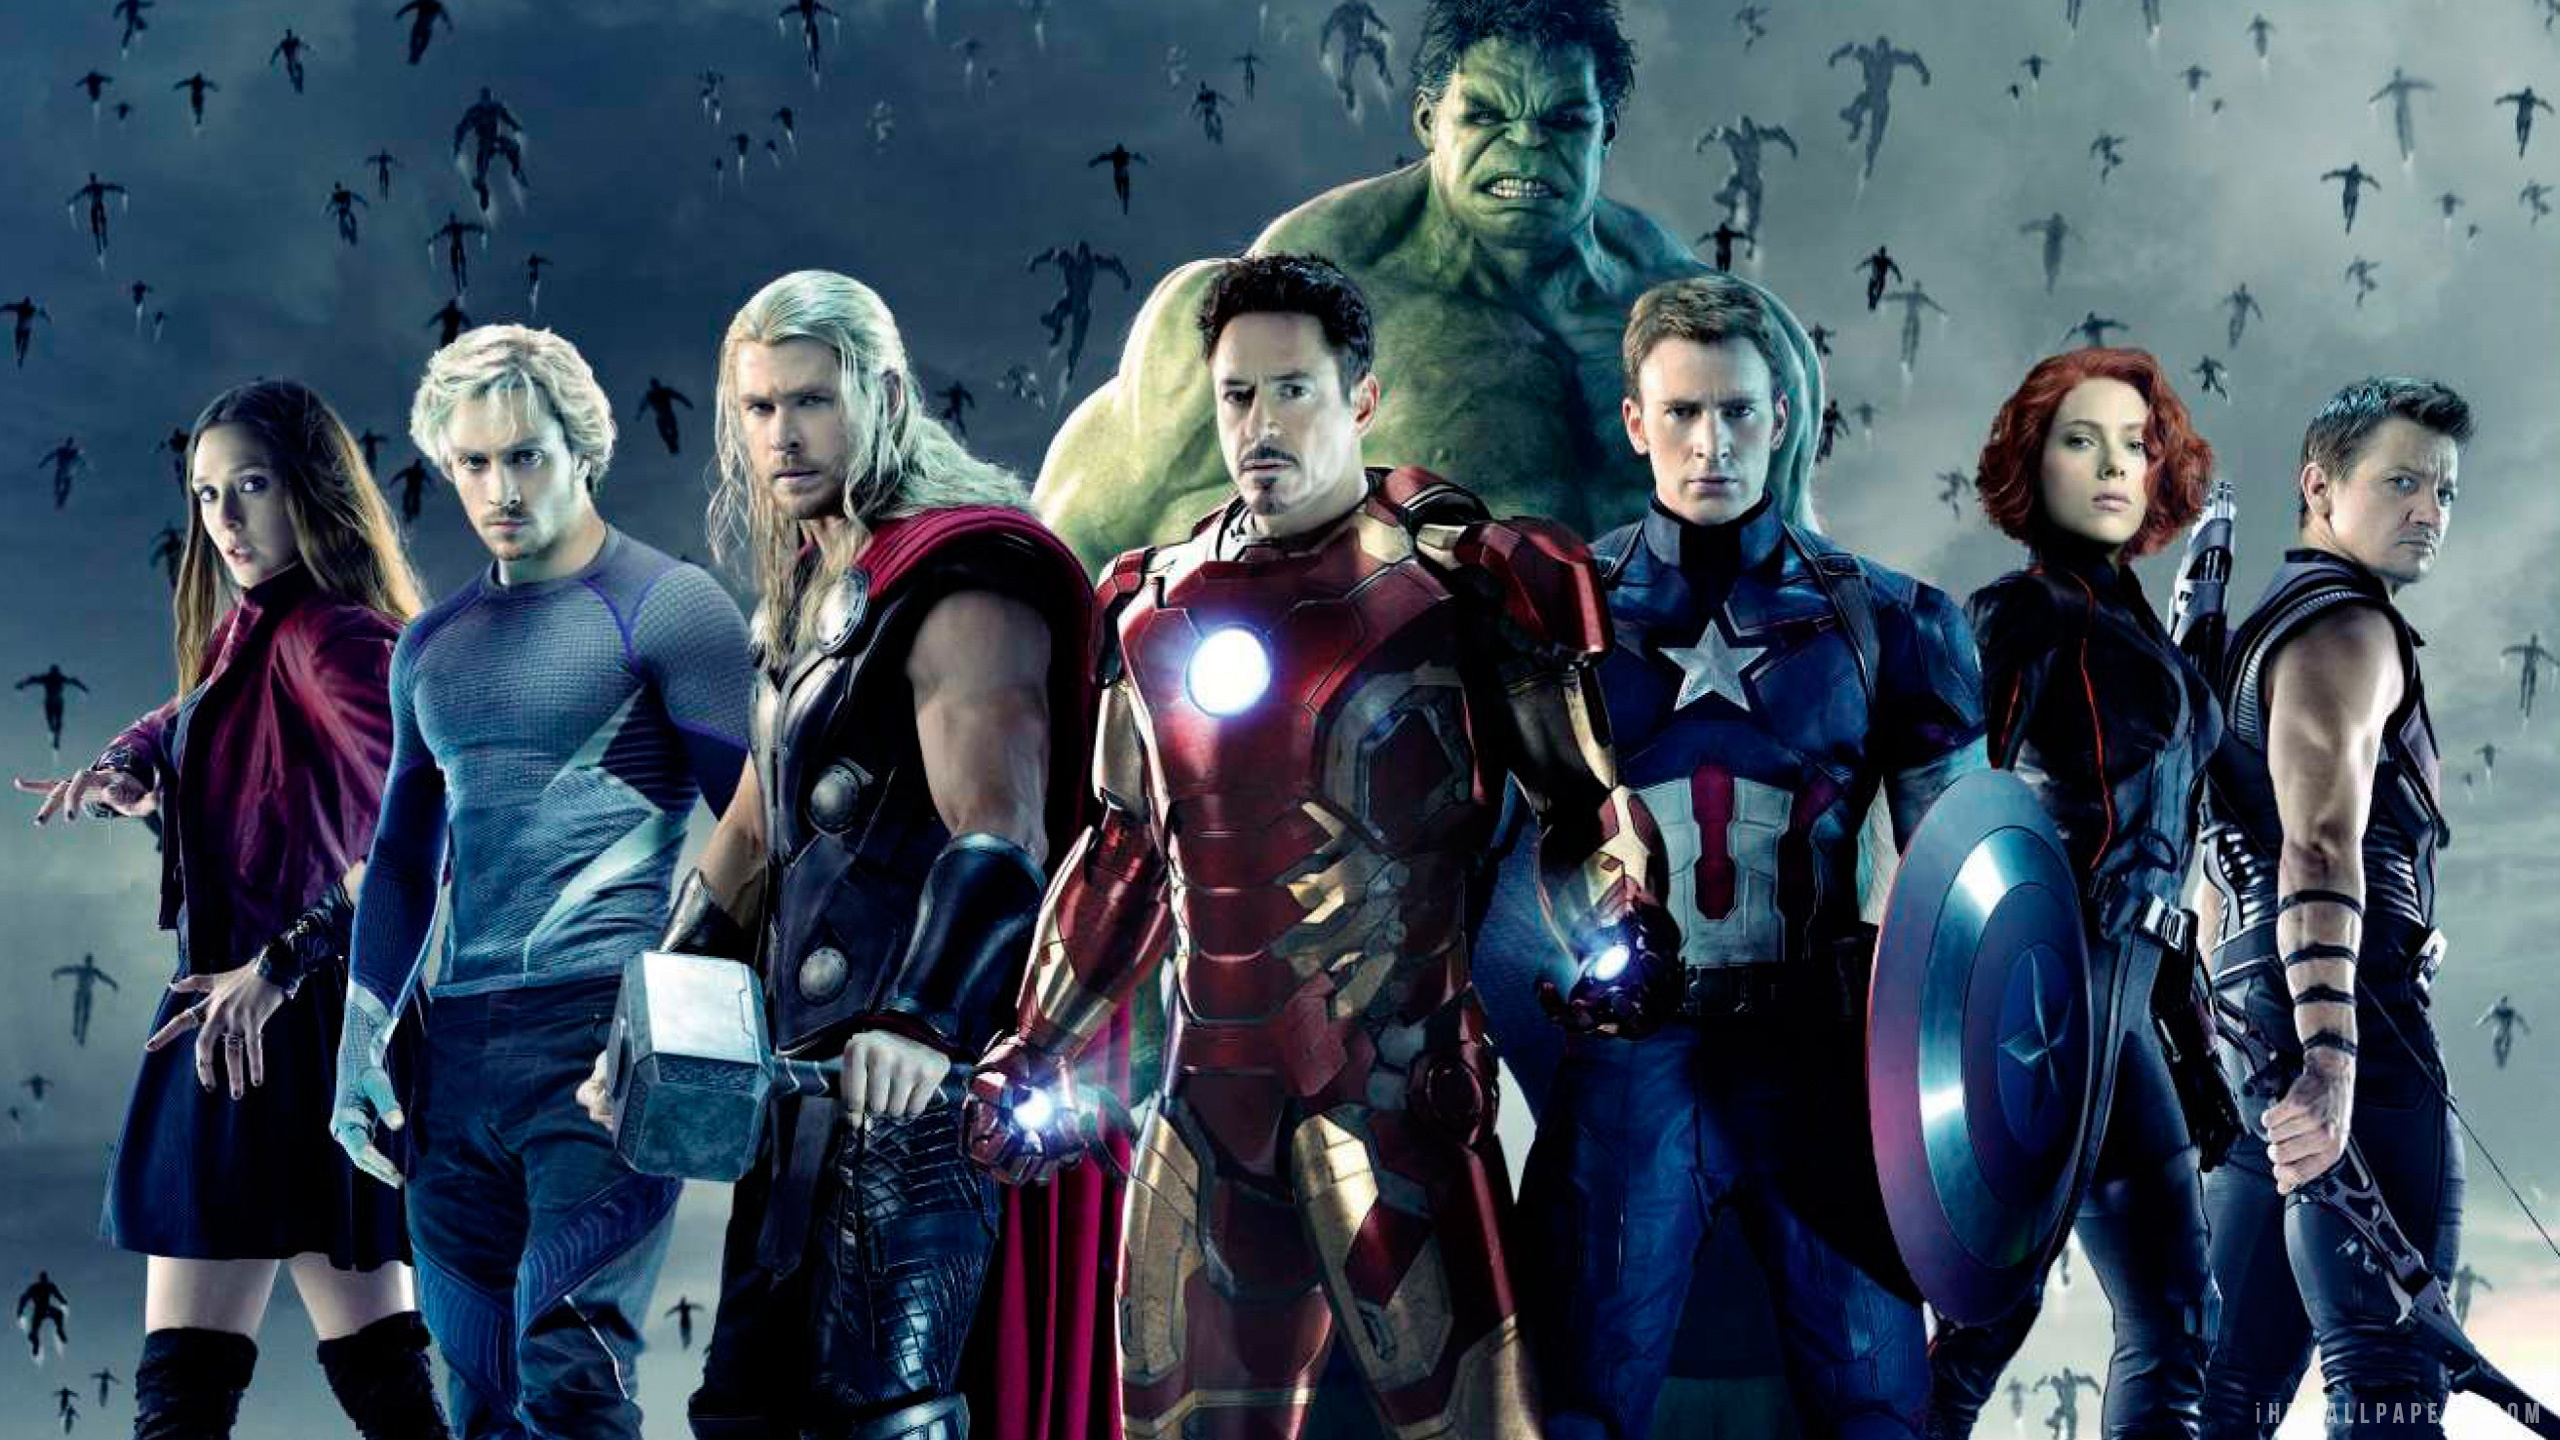 The Avengers Age of Ultron Team HD Wallpaper   iHD Wallpapers 2560x1440